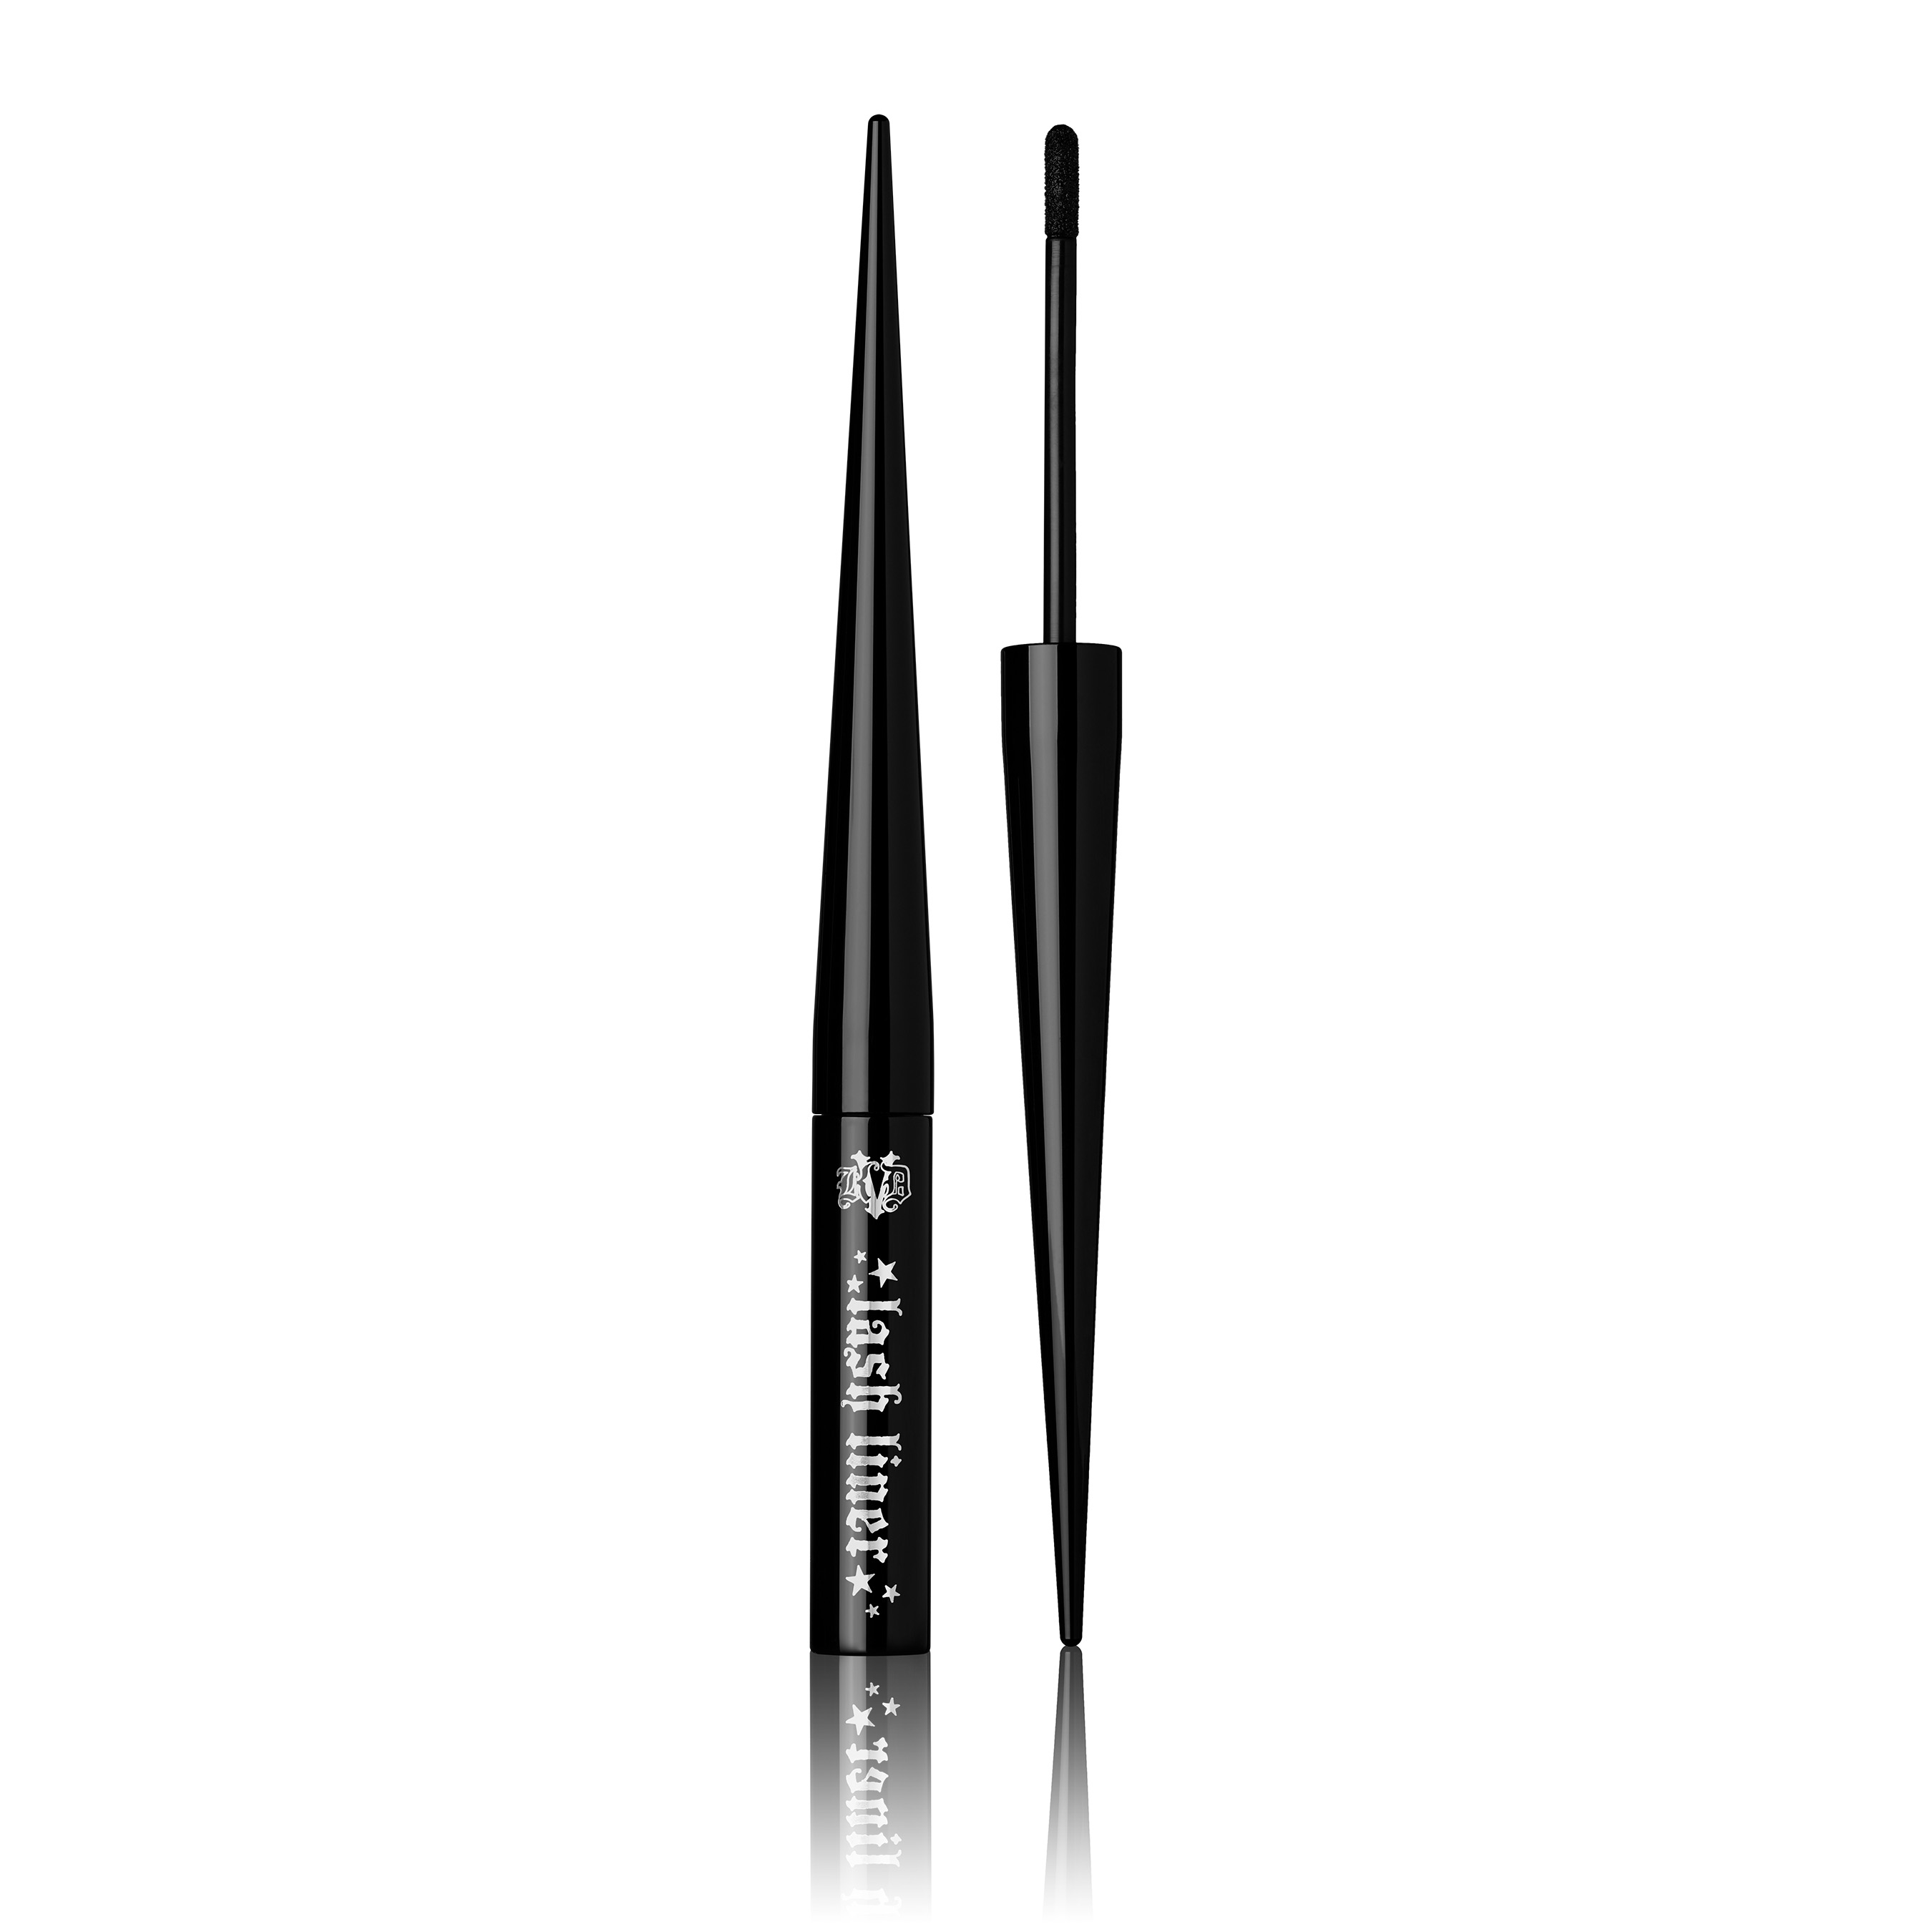 Kat Von D Beauty Lash Liner; Launching 7/20